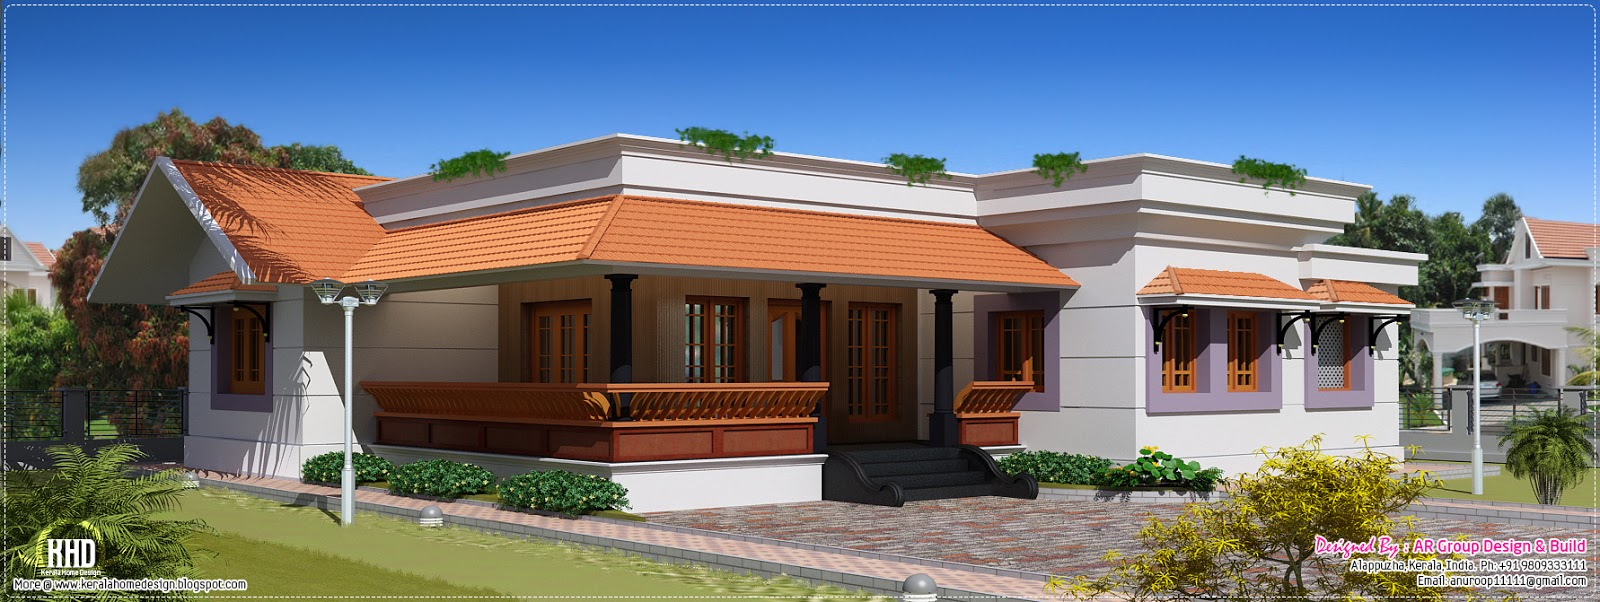 1600 sq. feet single floor house - Kerala home design and floor plans: www.keralahousedesigns.com/2013/02/1600-sq-ft-single-floor-house.html